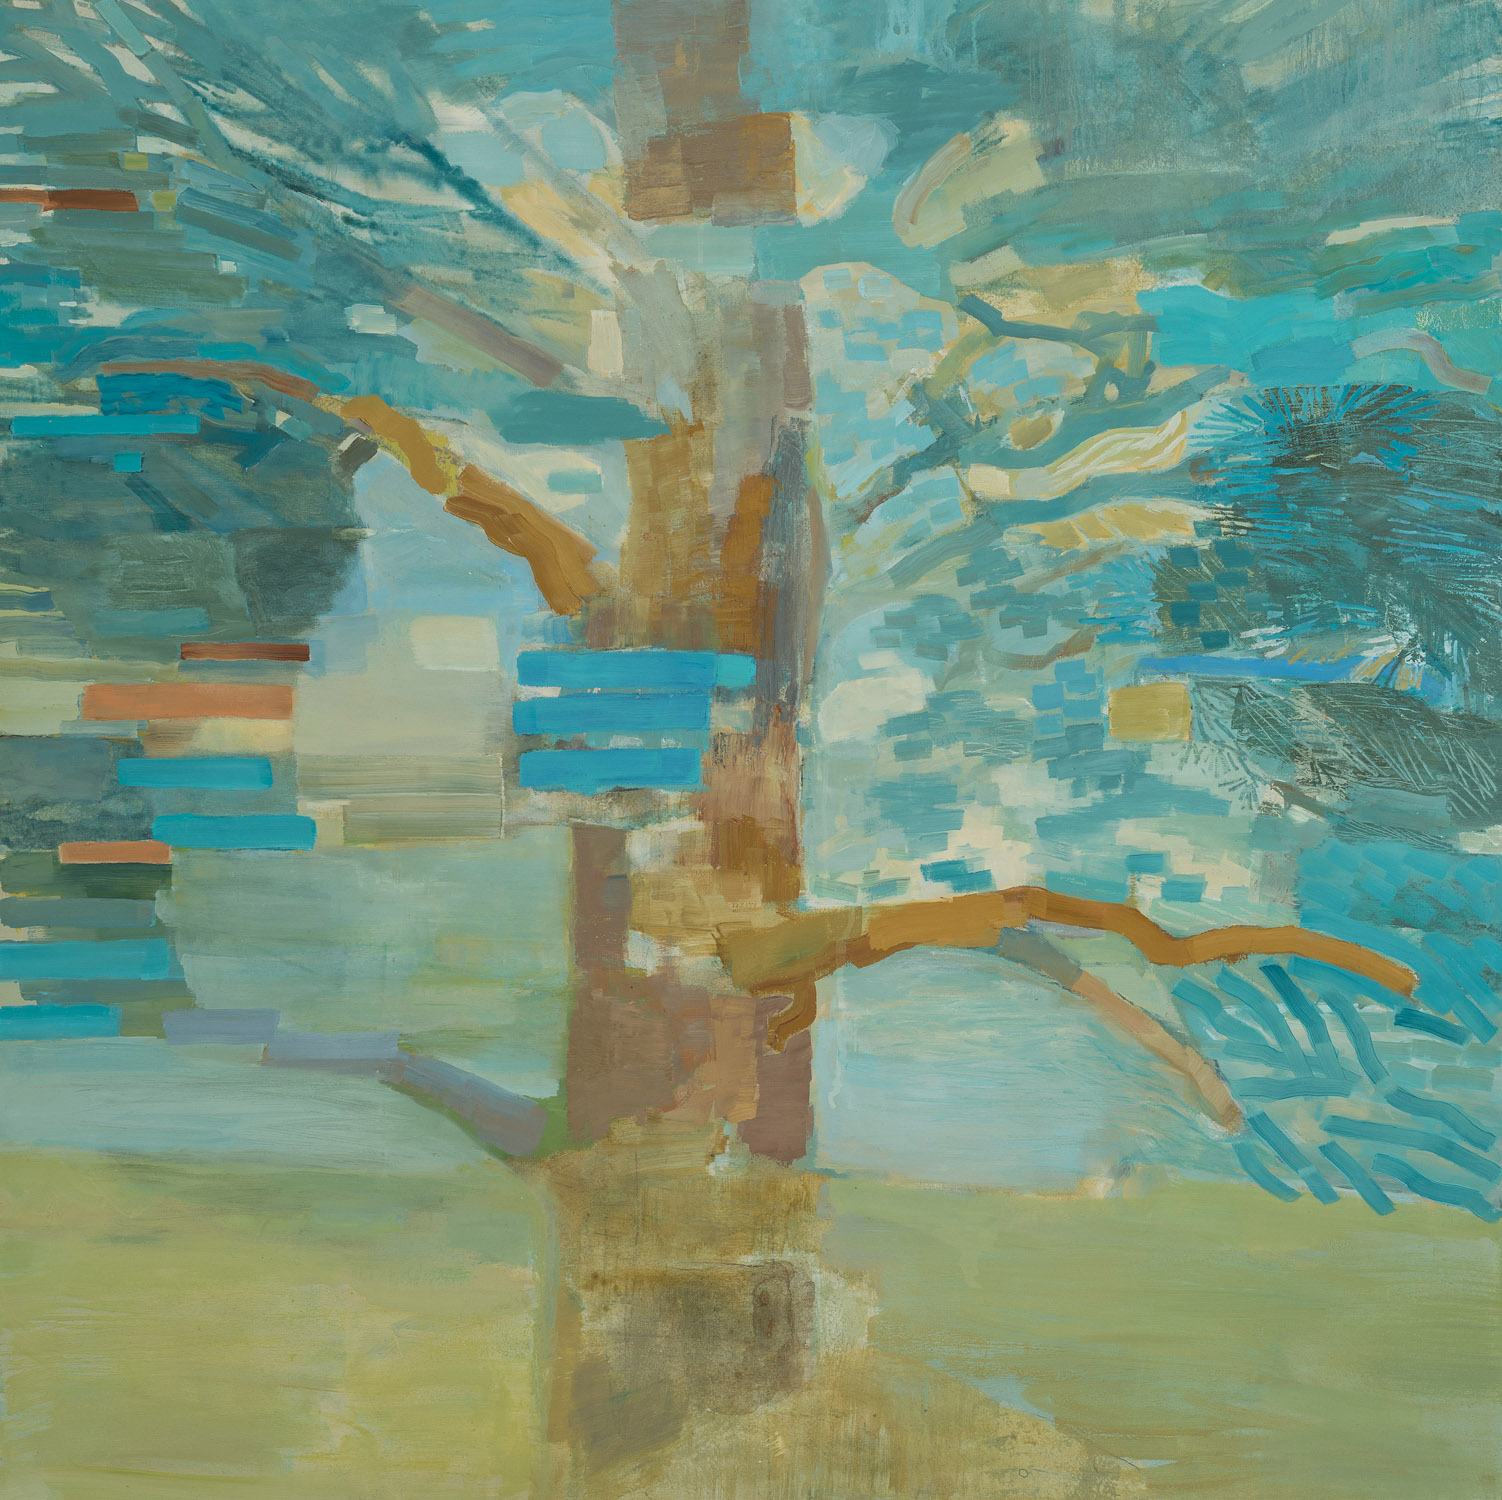 AUGUST CONIFER • oil on canvas • 40 by 40 inches • 2012